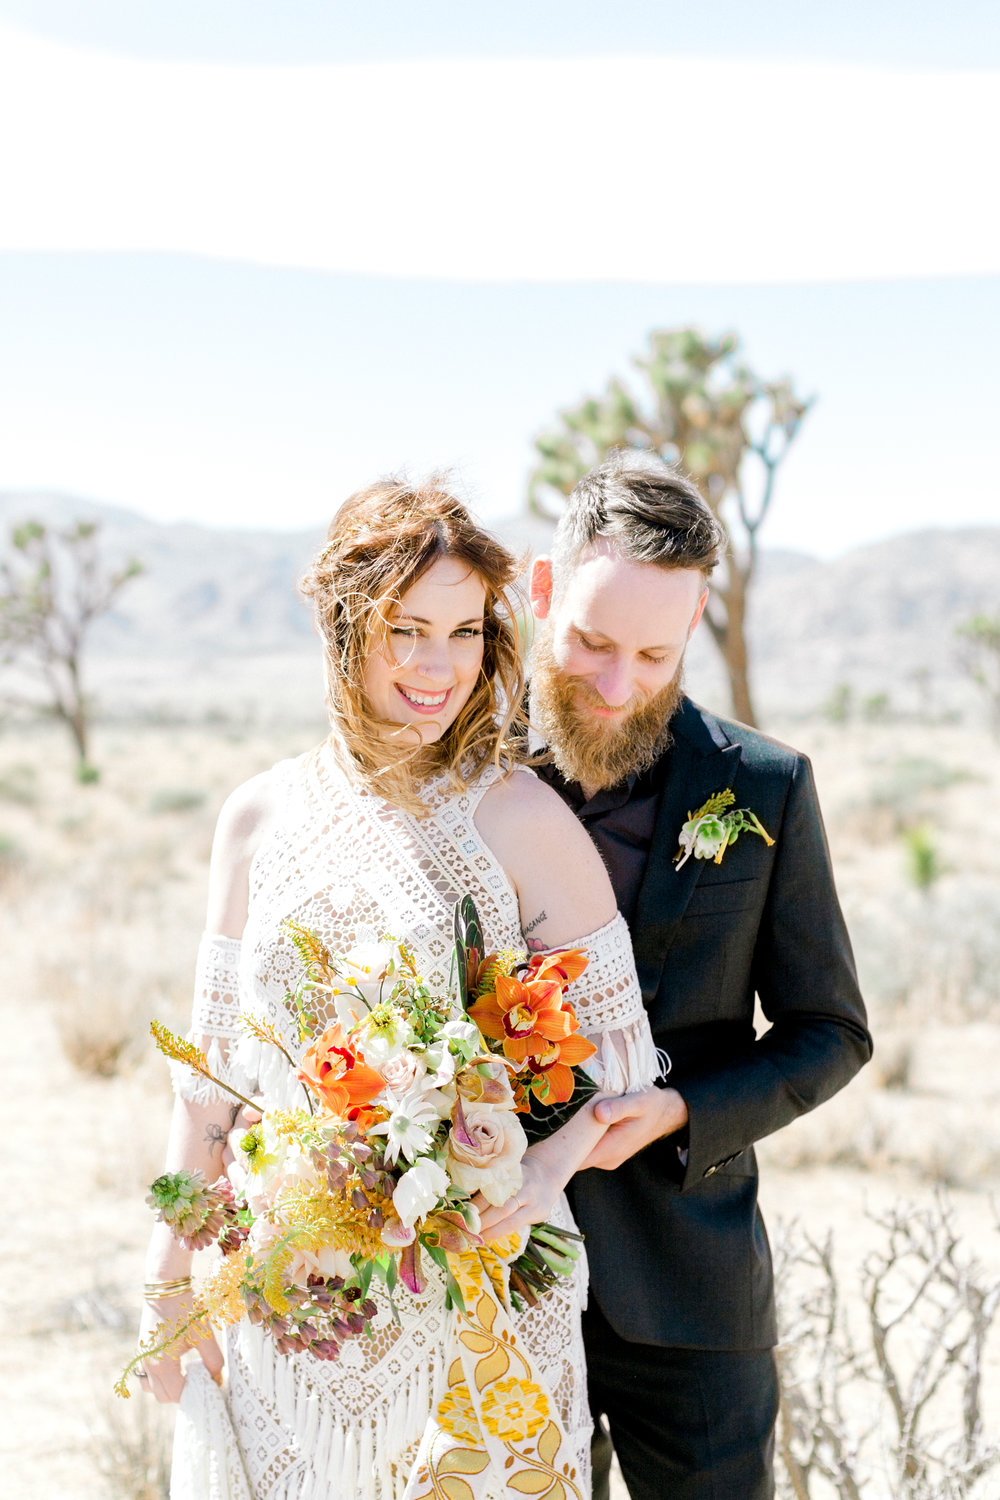 jessica sgubin photography atlanta portrait photographer engagement family couple wedding joshua tree wedding elopement-1-3.jpg